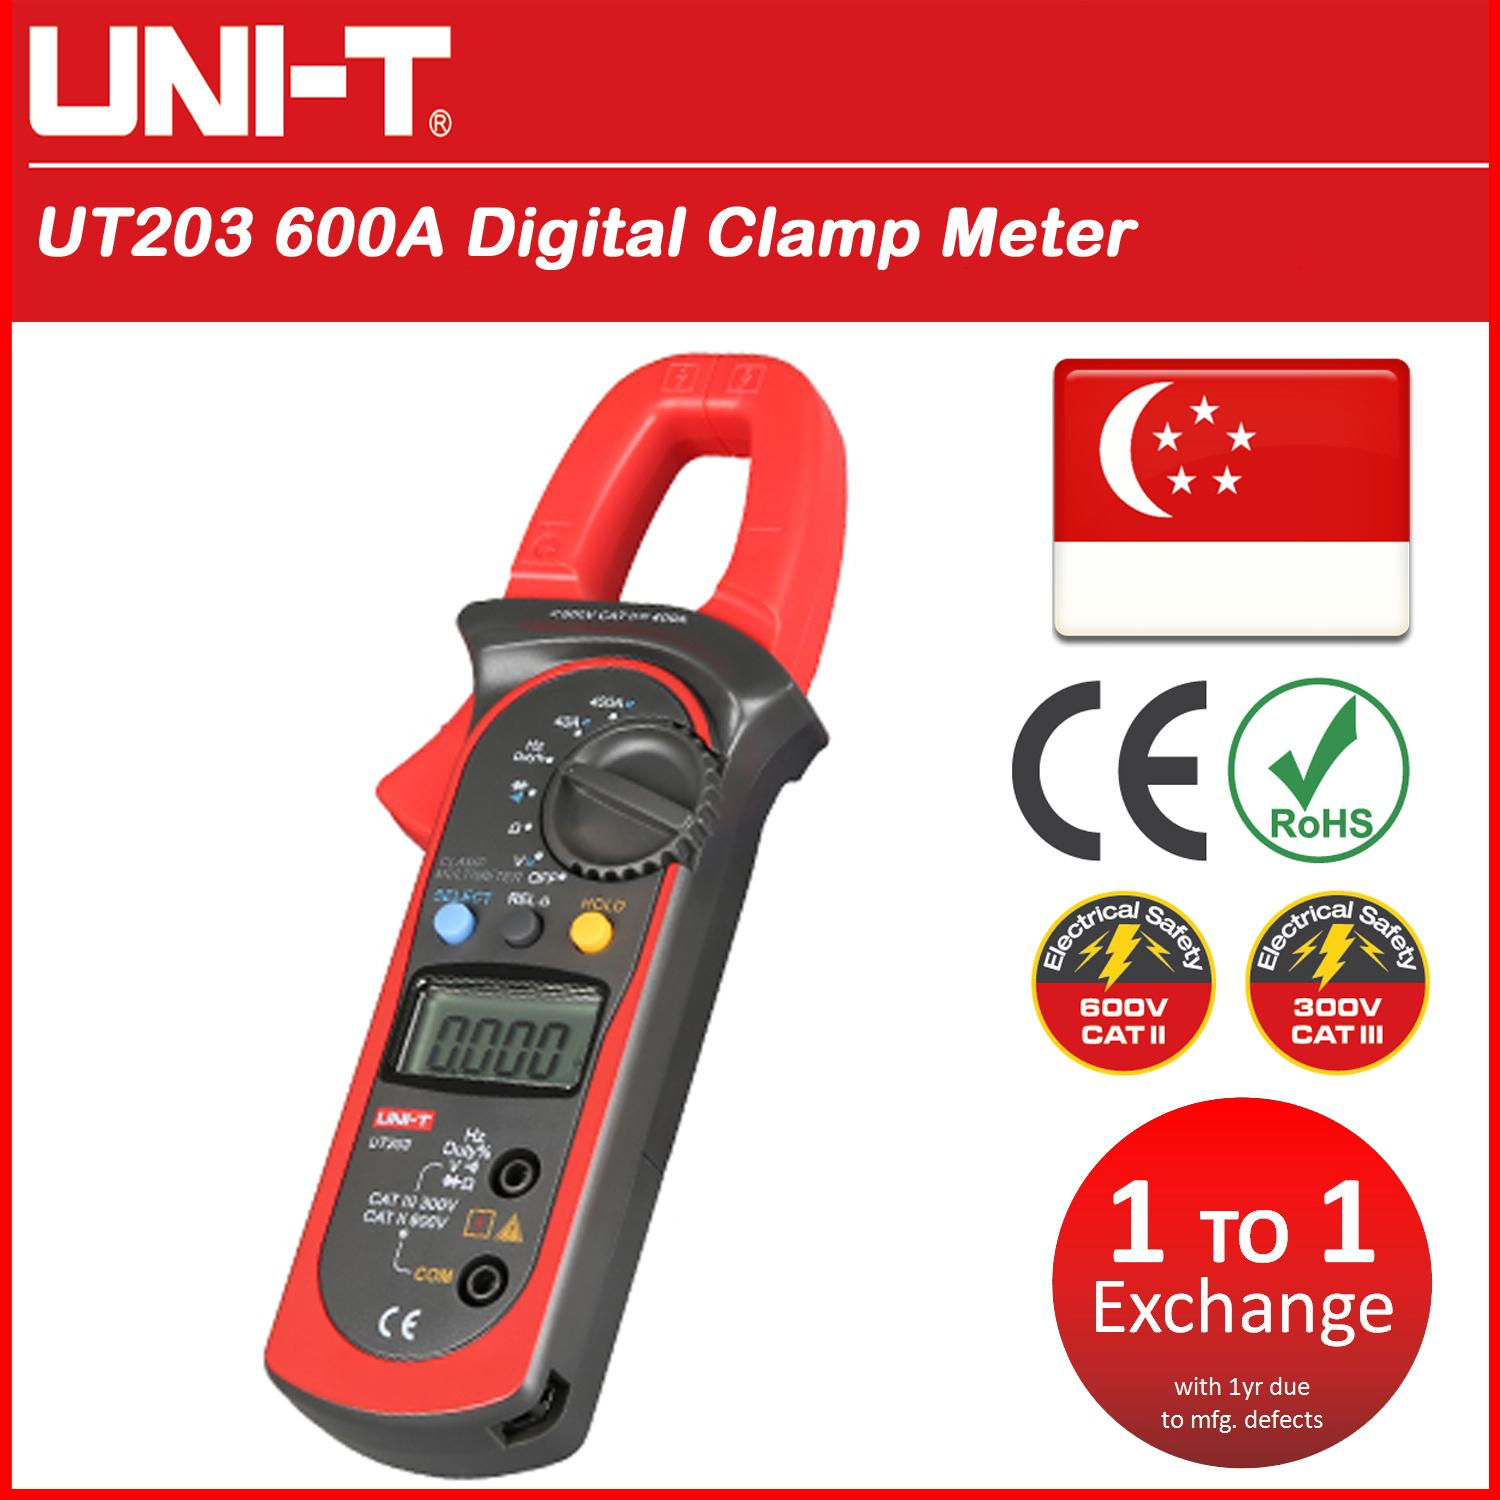 UT203 Digital Clamp Meter